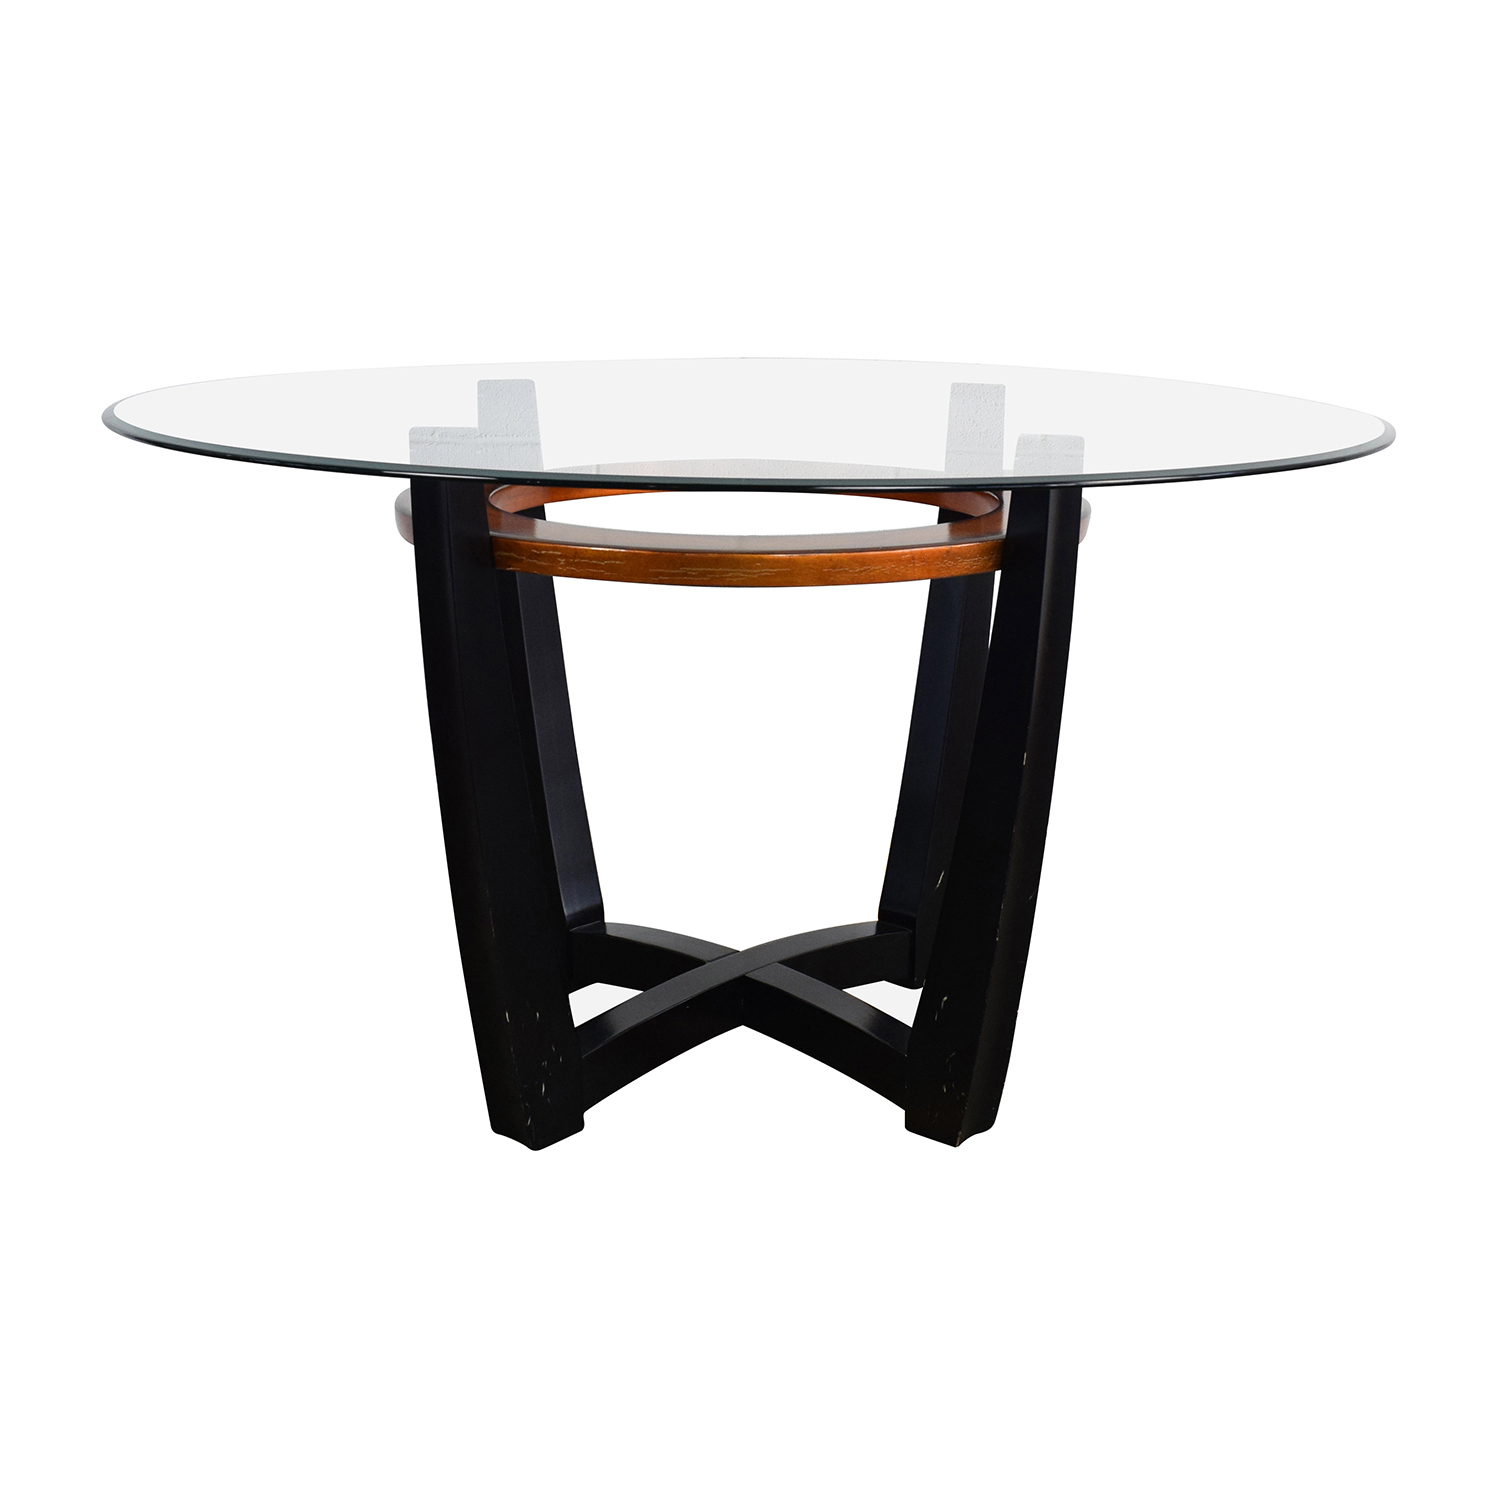 e99212c0fd9 88% OFF - Macy s Macy s Elation Round Glass Dining Table   Tables